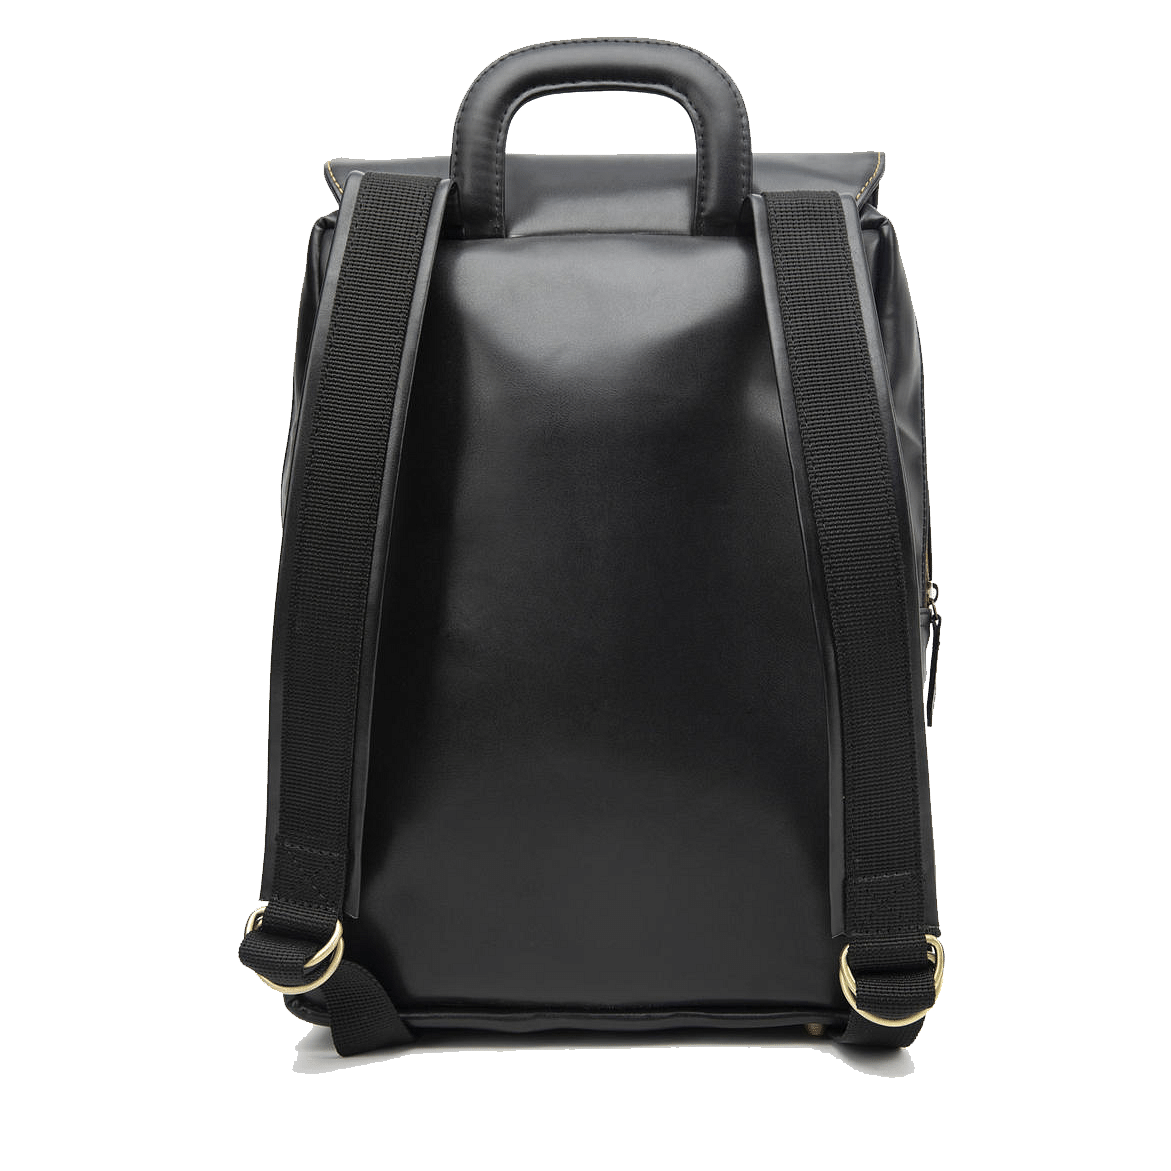 The Metro Movers Black Backpack